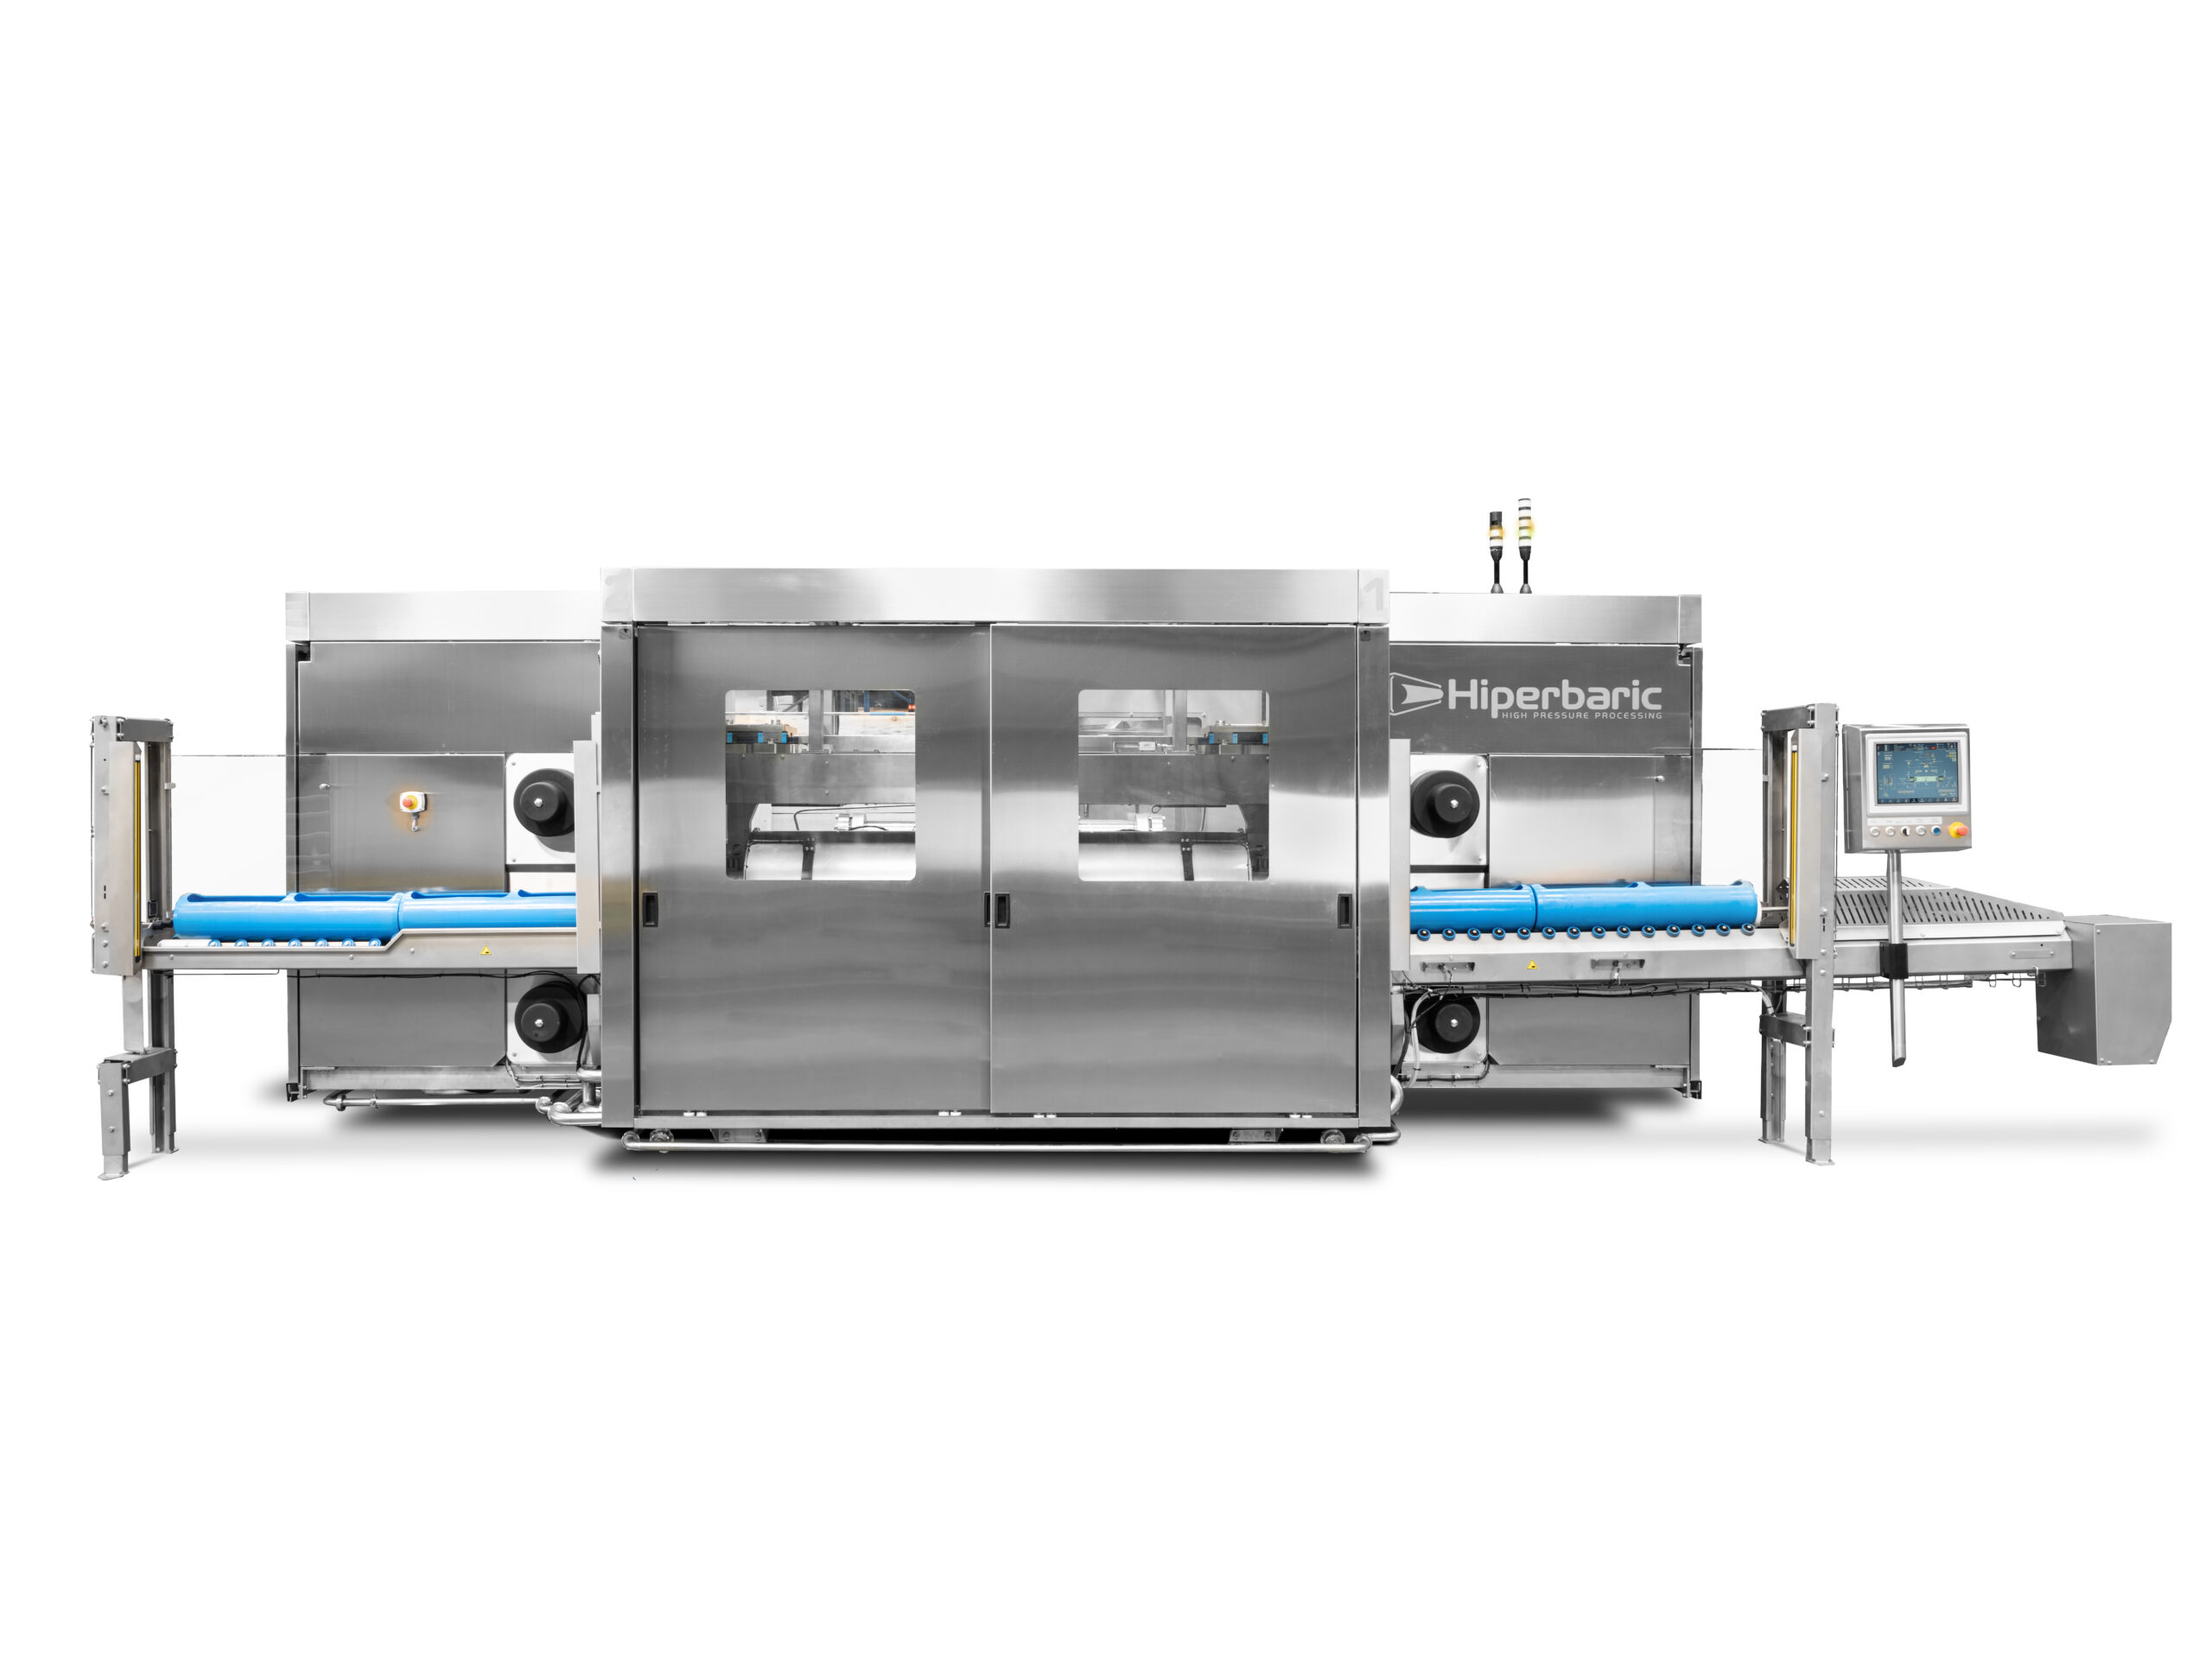 New Hiperbaric 55, the reference among small HPP industrial equipment